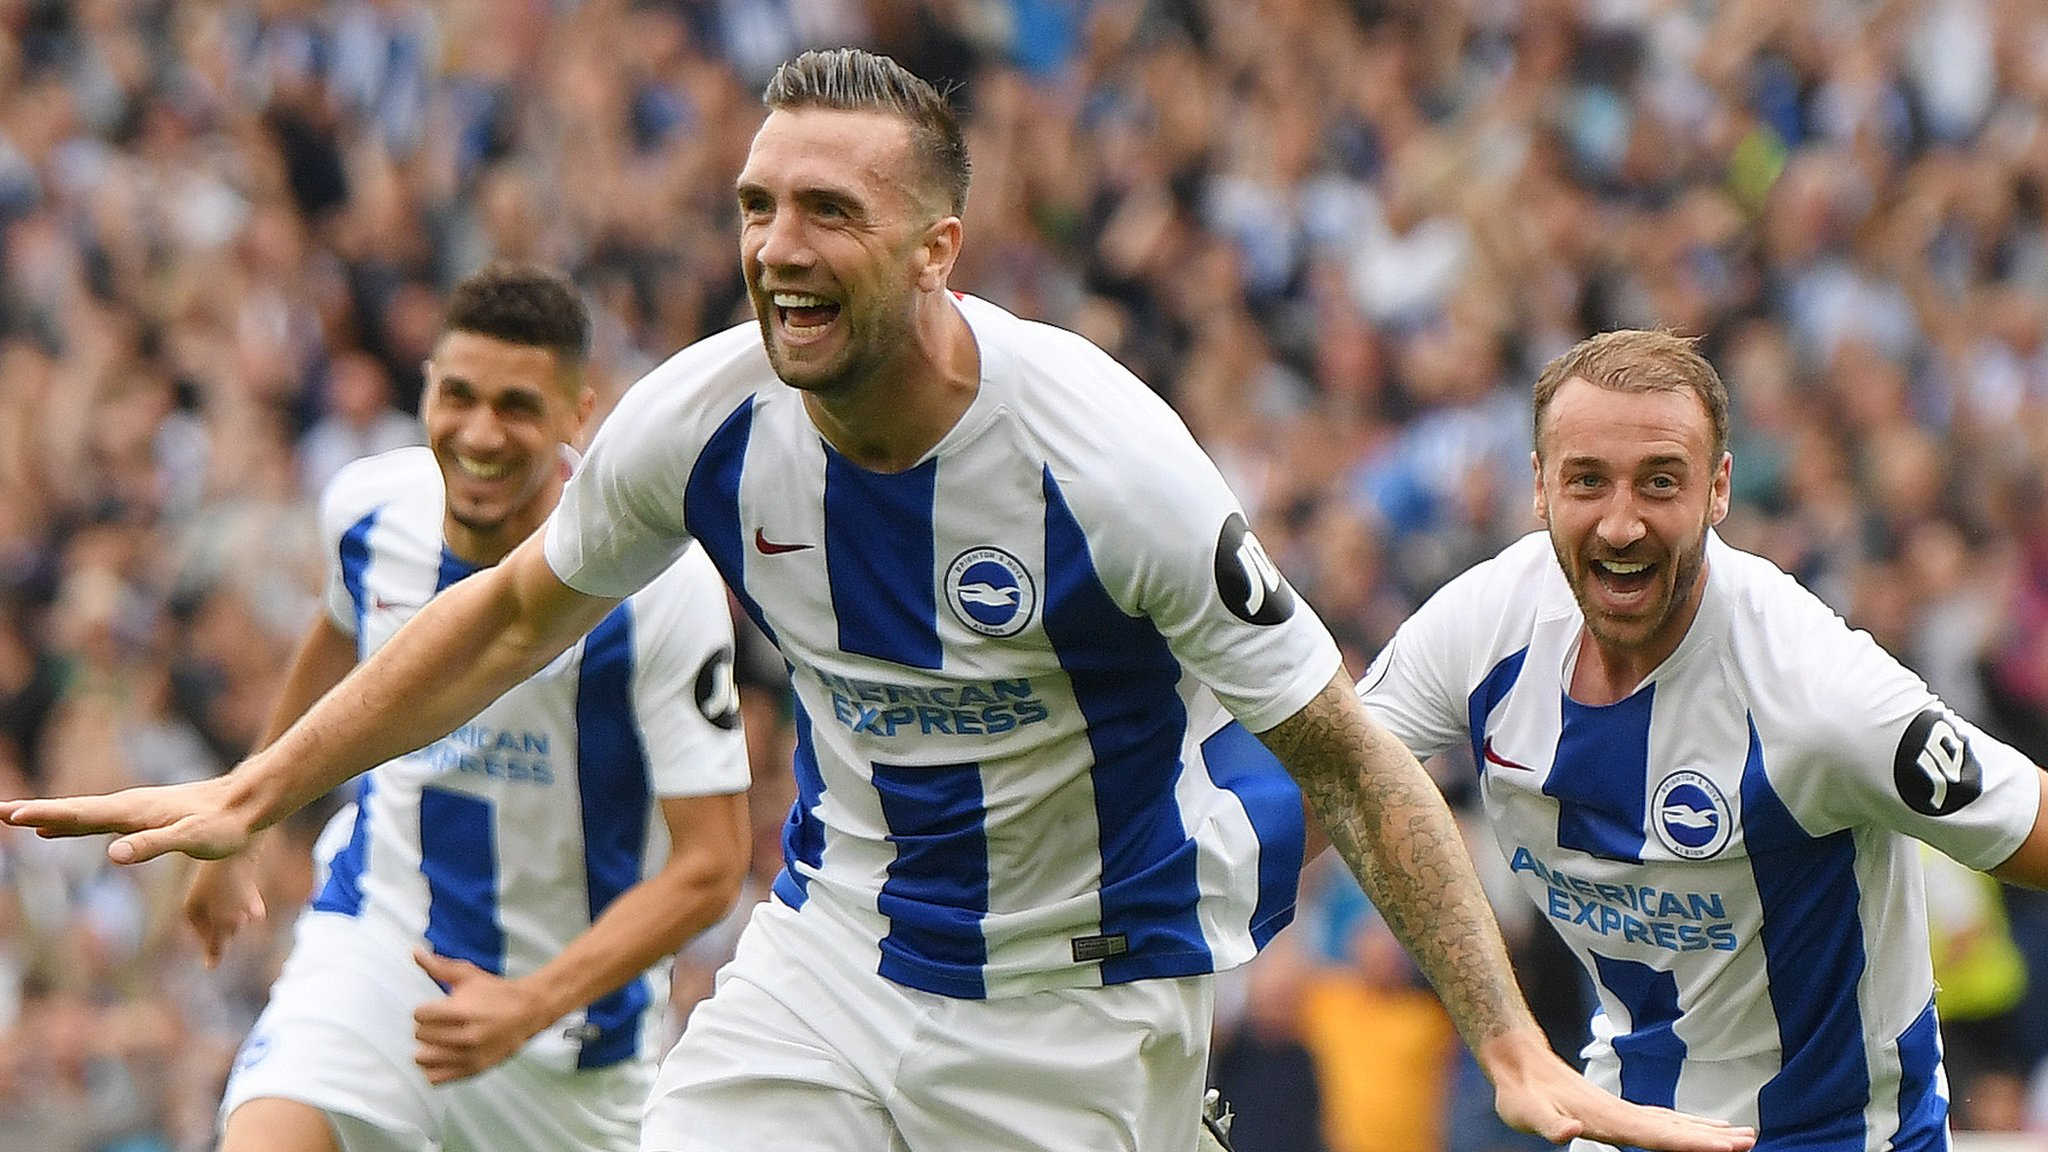 Brighton 3-2 Man Utd: Brighton score three first-half goals to stun visitors